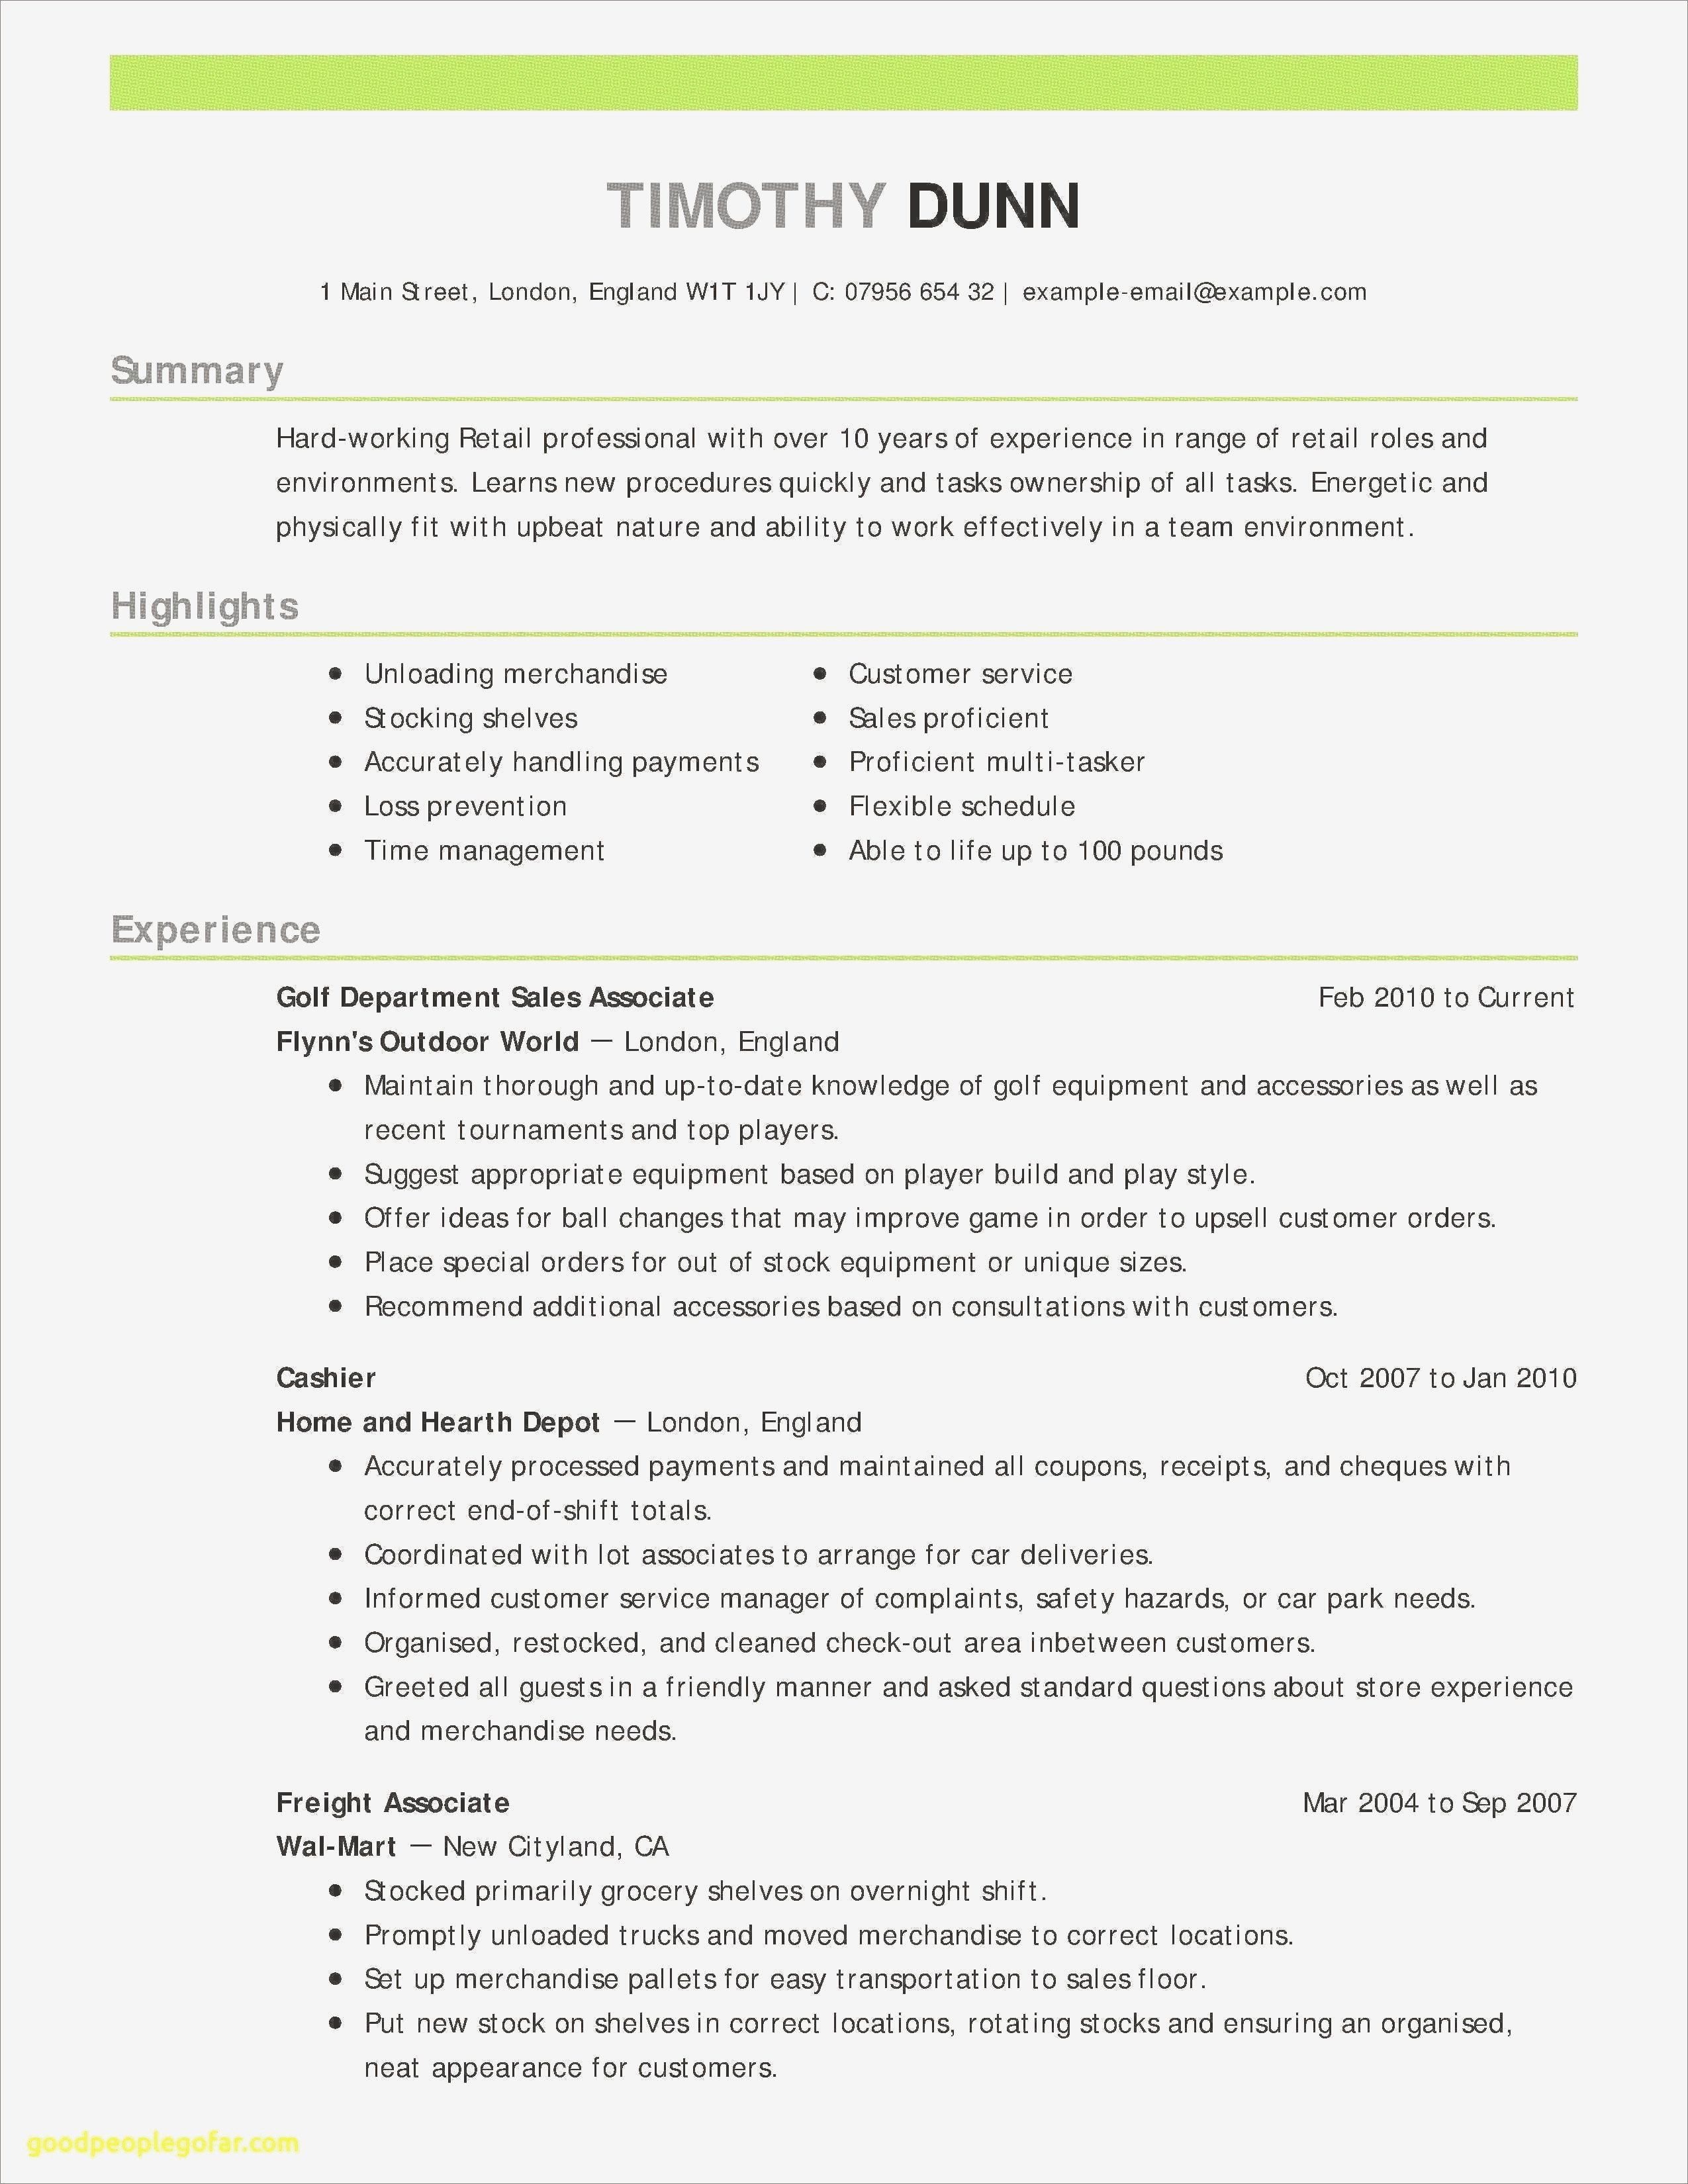 32 Lovely Resume Summary Examples for Sales in 2020